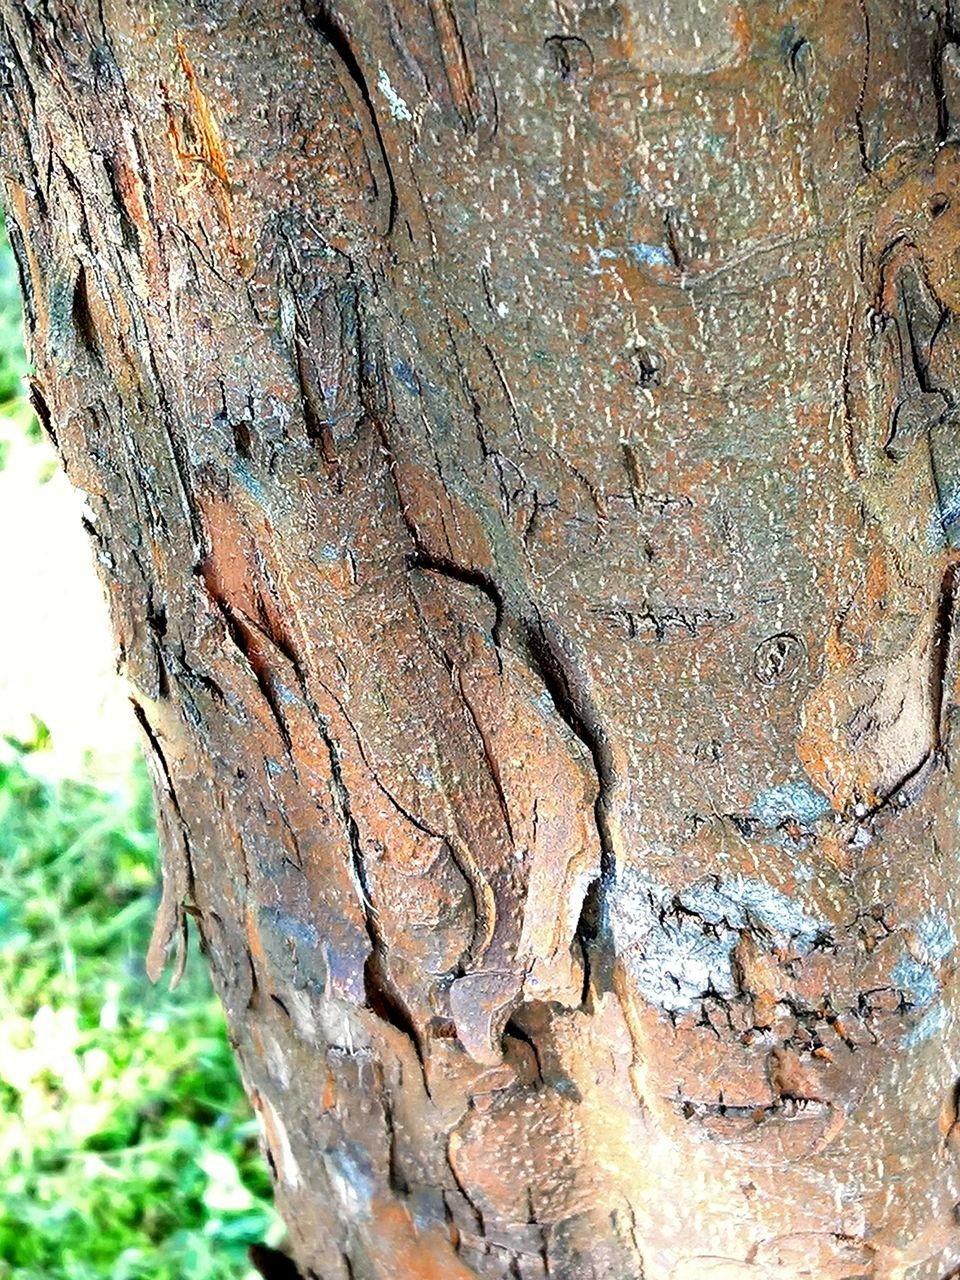 tree, tree trunk, close-up, nature, no people, rough, textured, day, outdoors